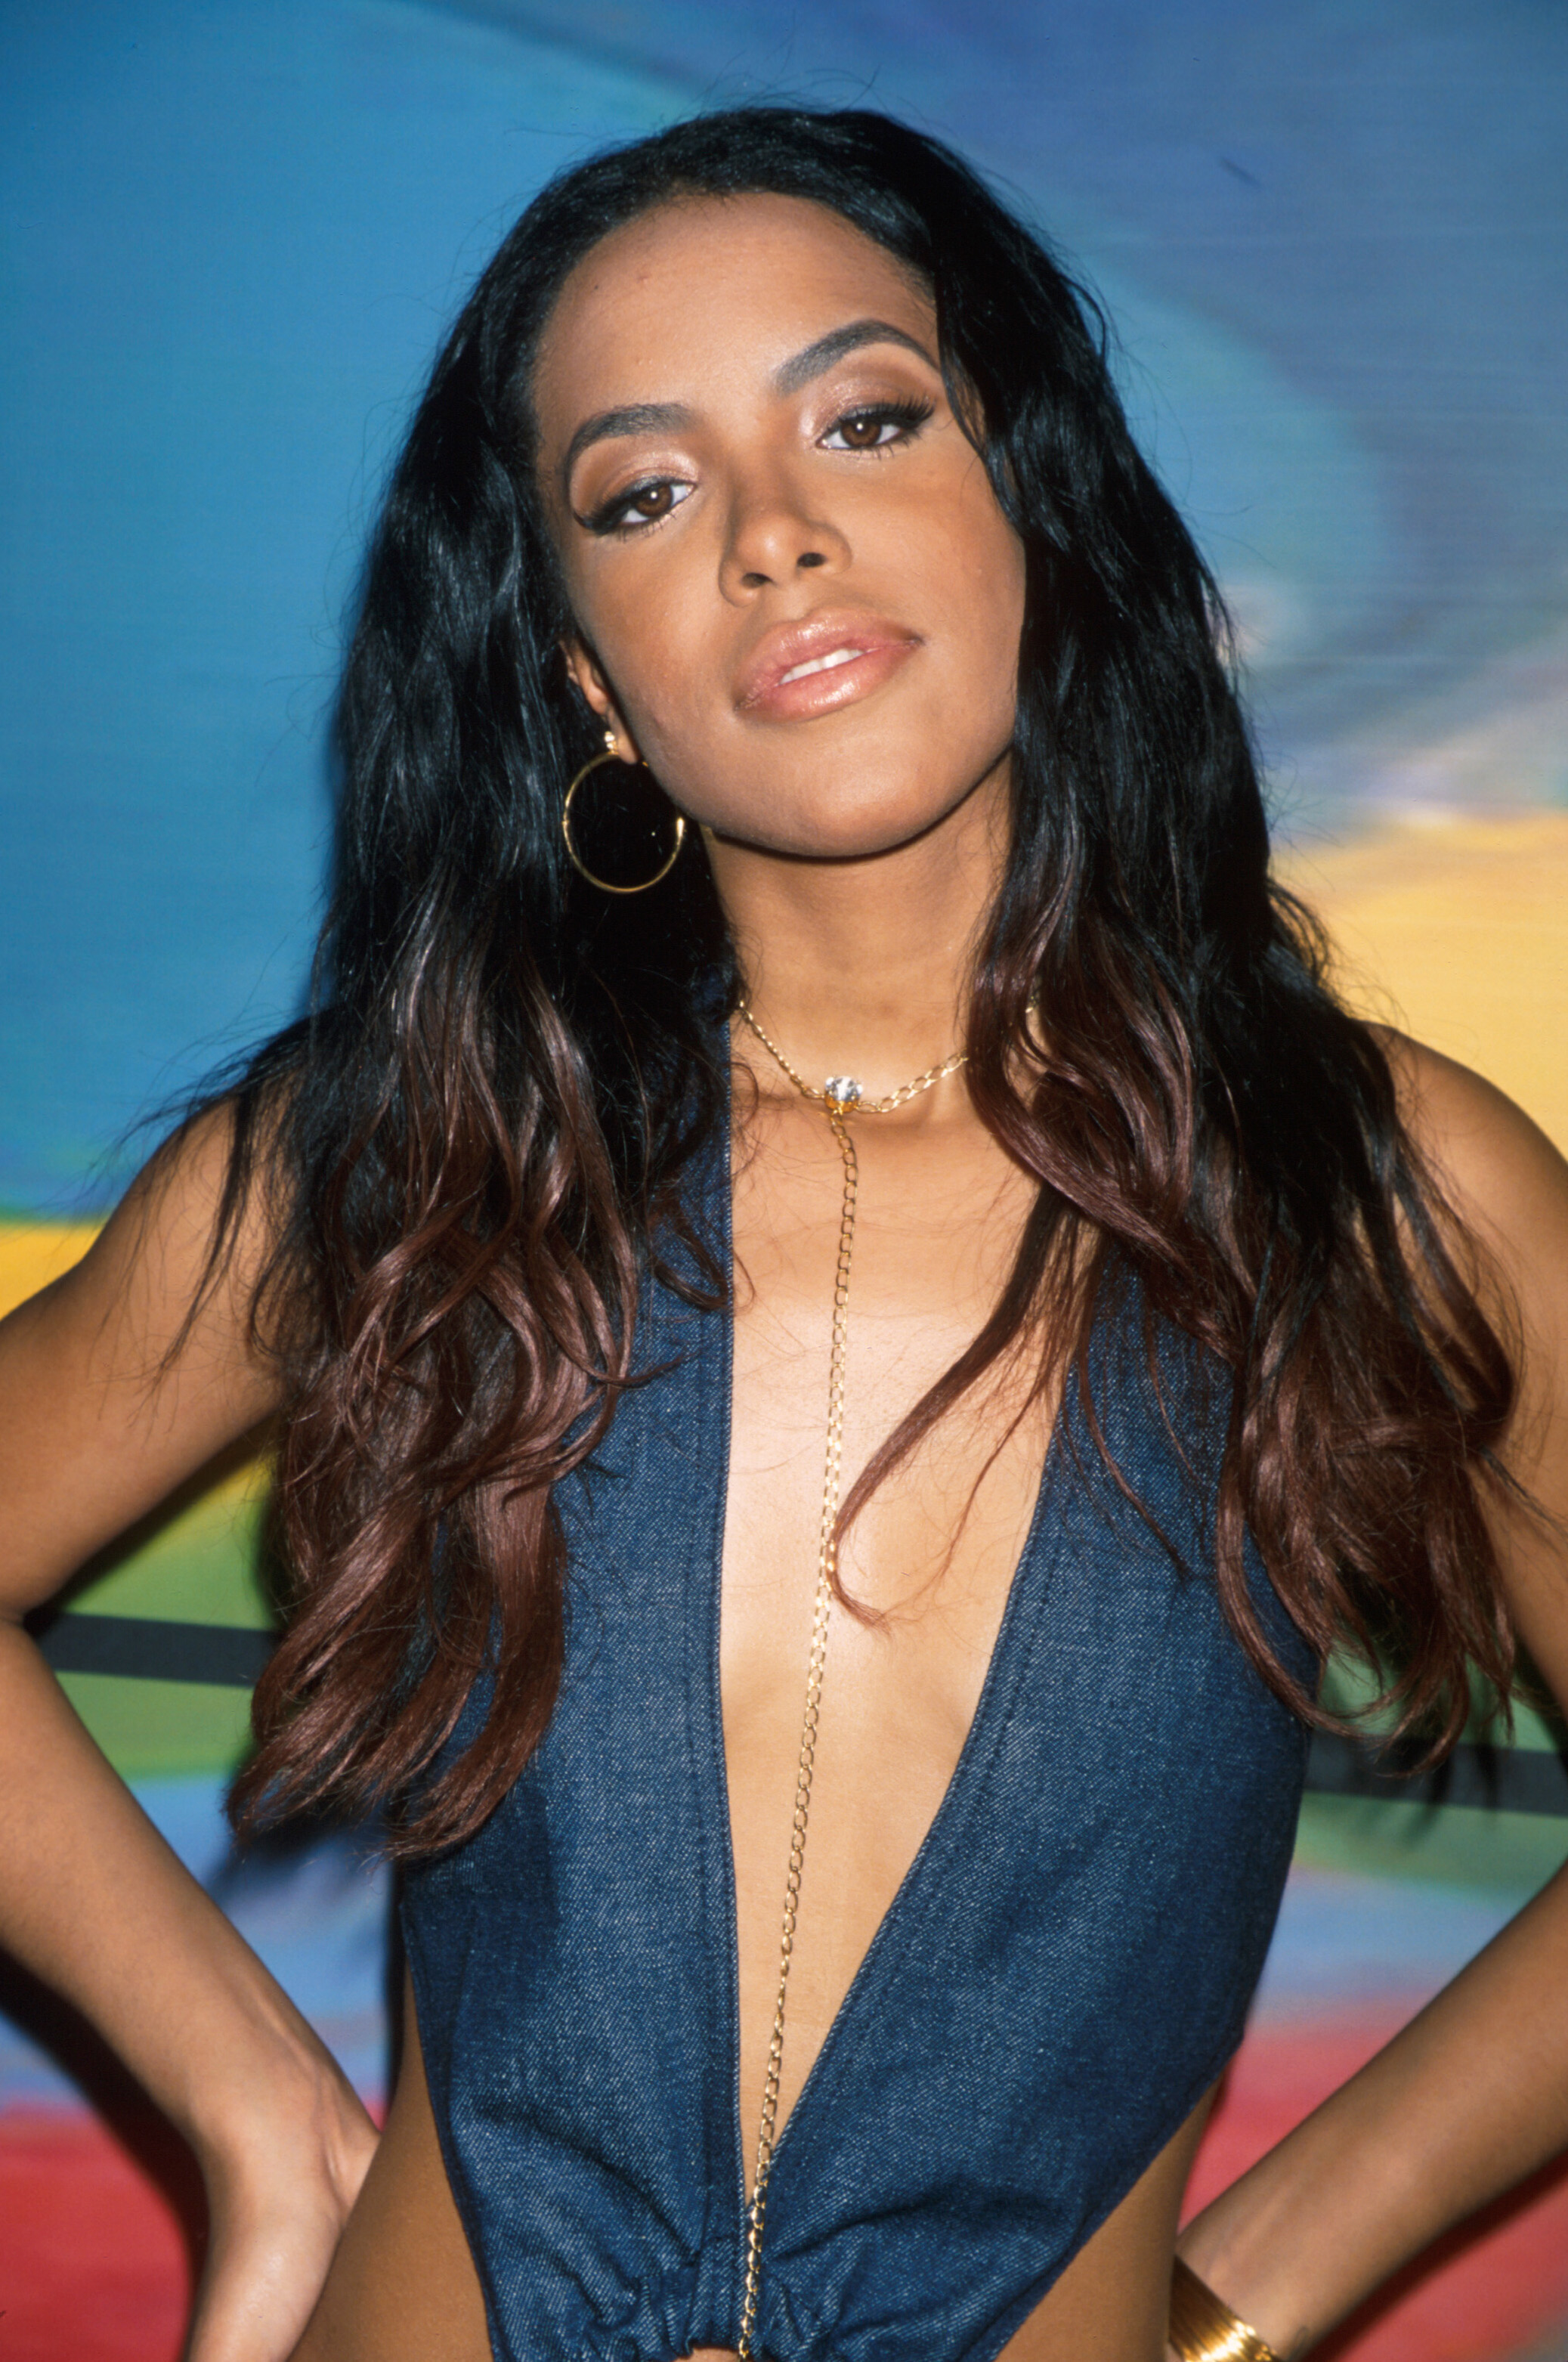 Aaliyah S Style And Beauty Through The Years A